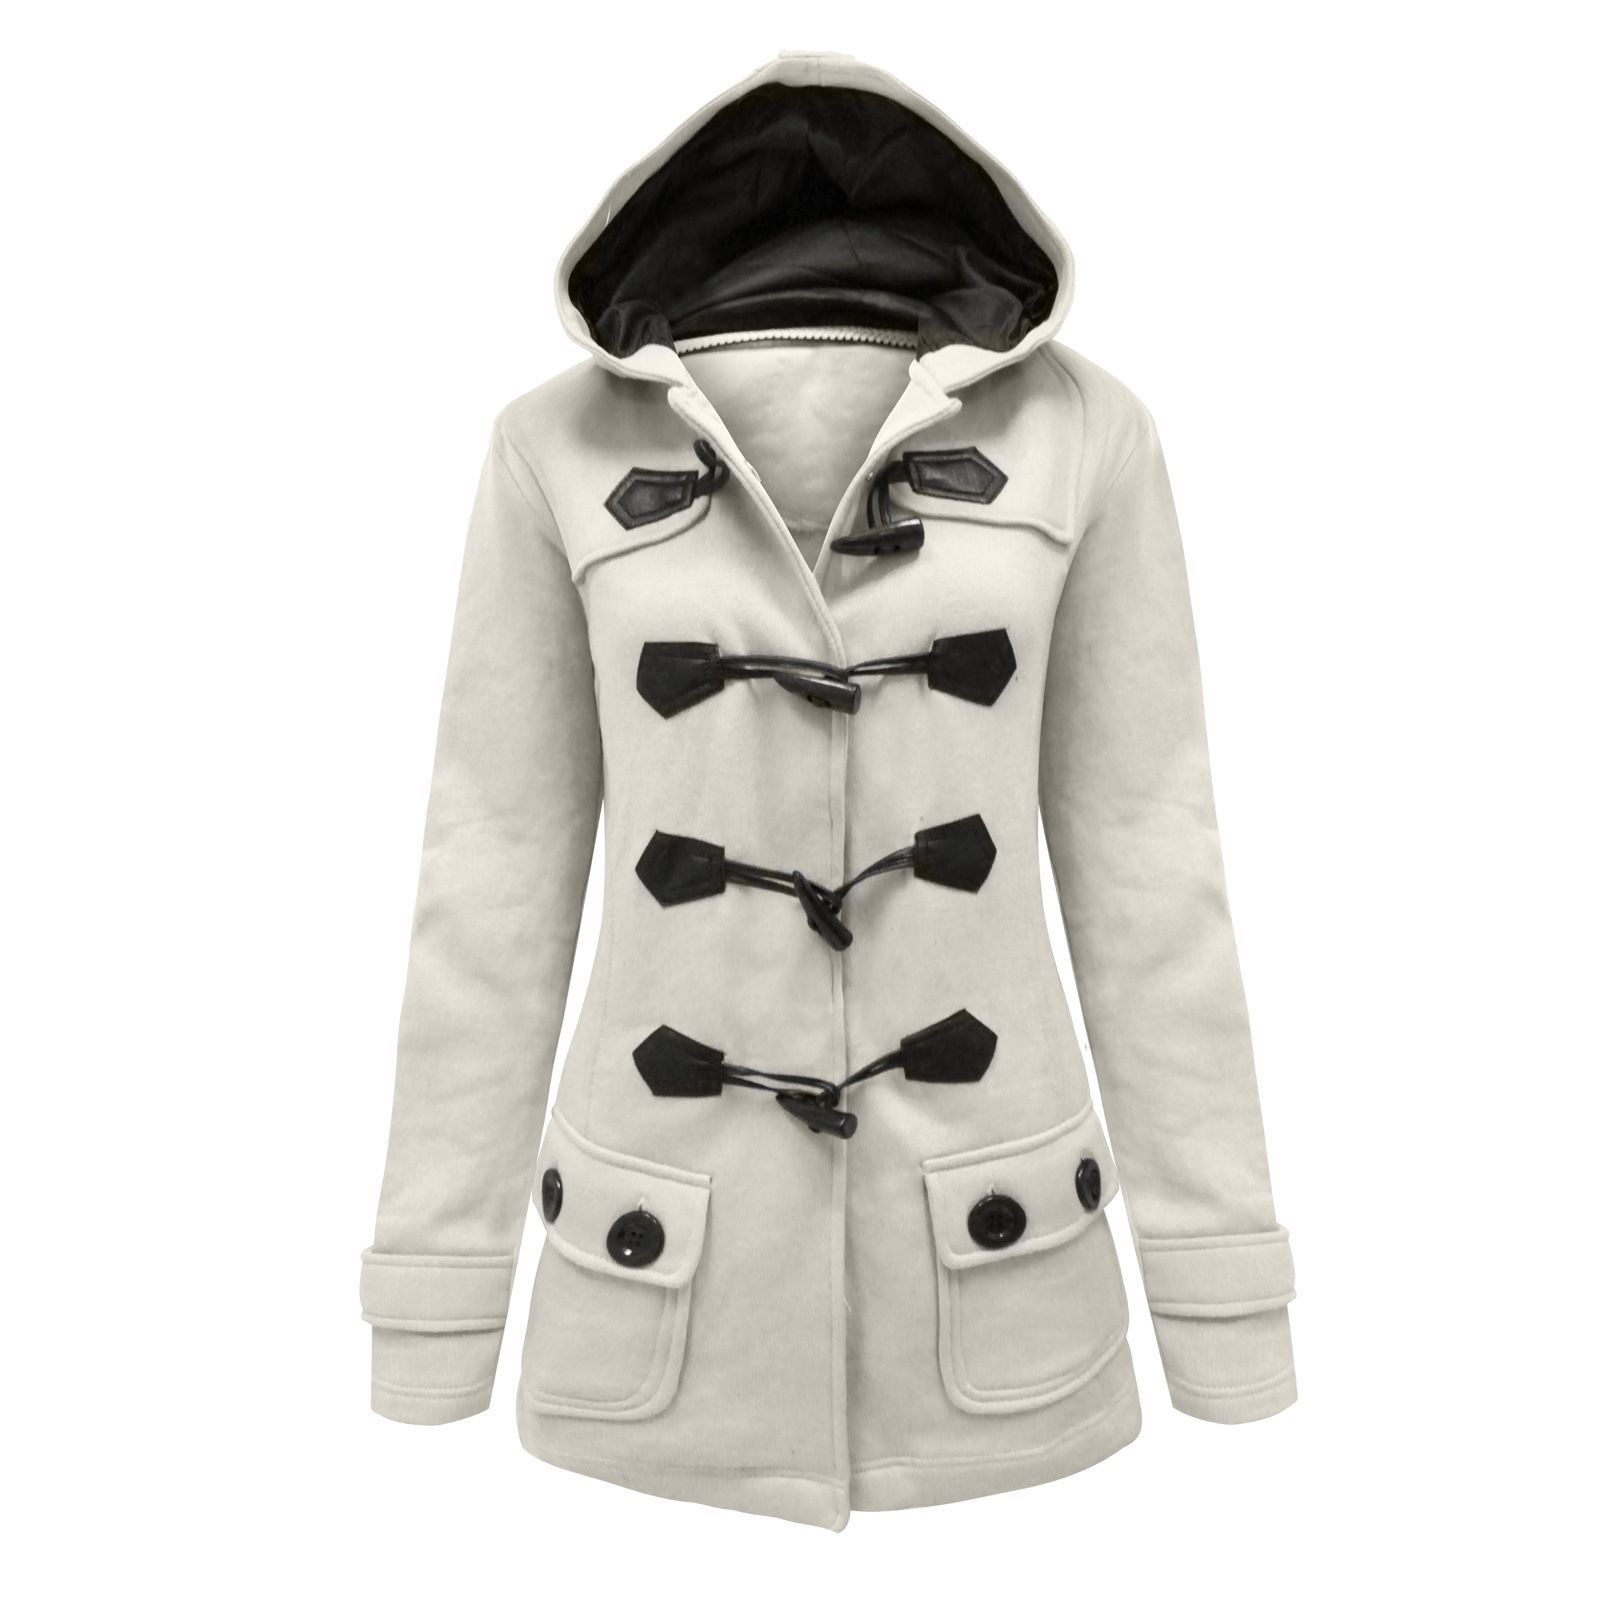 Shop for Womens Duffle Coats at Stylight: items By 53 top brands All colors & styles up to −50% on sale» Browse now!